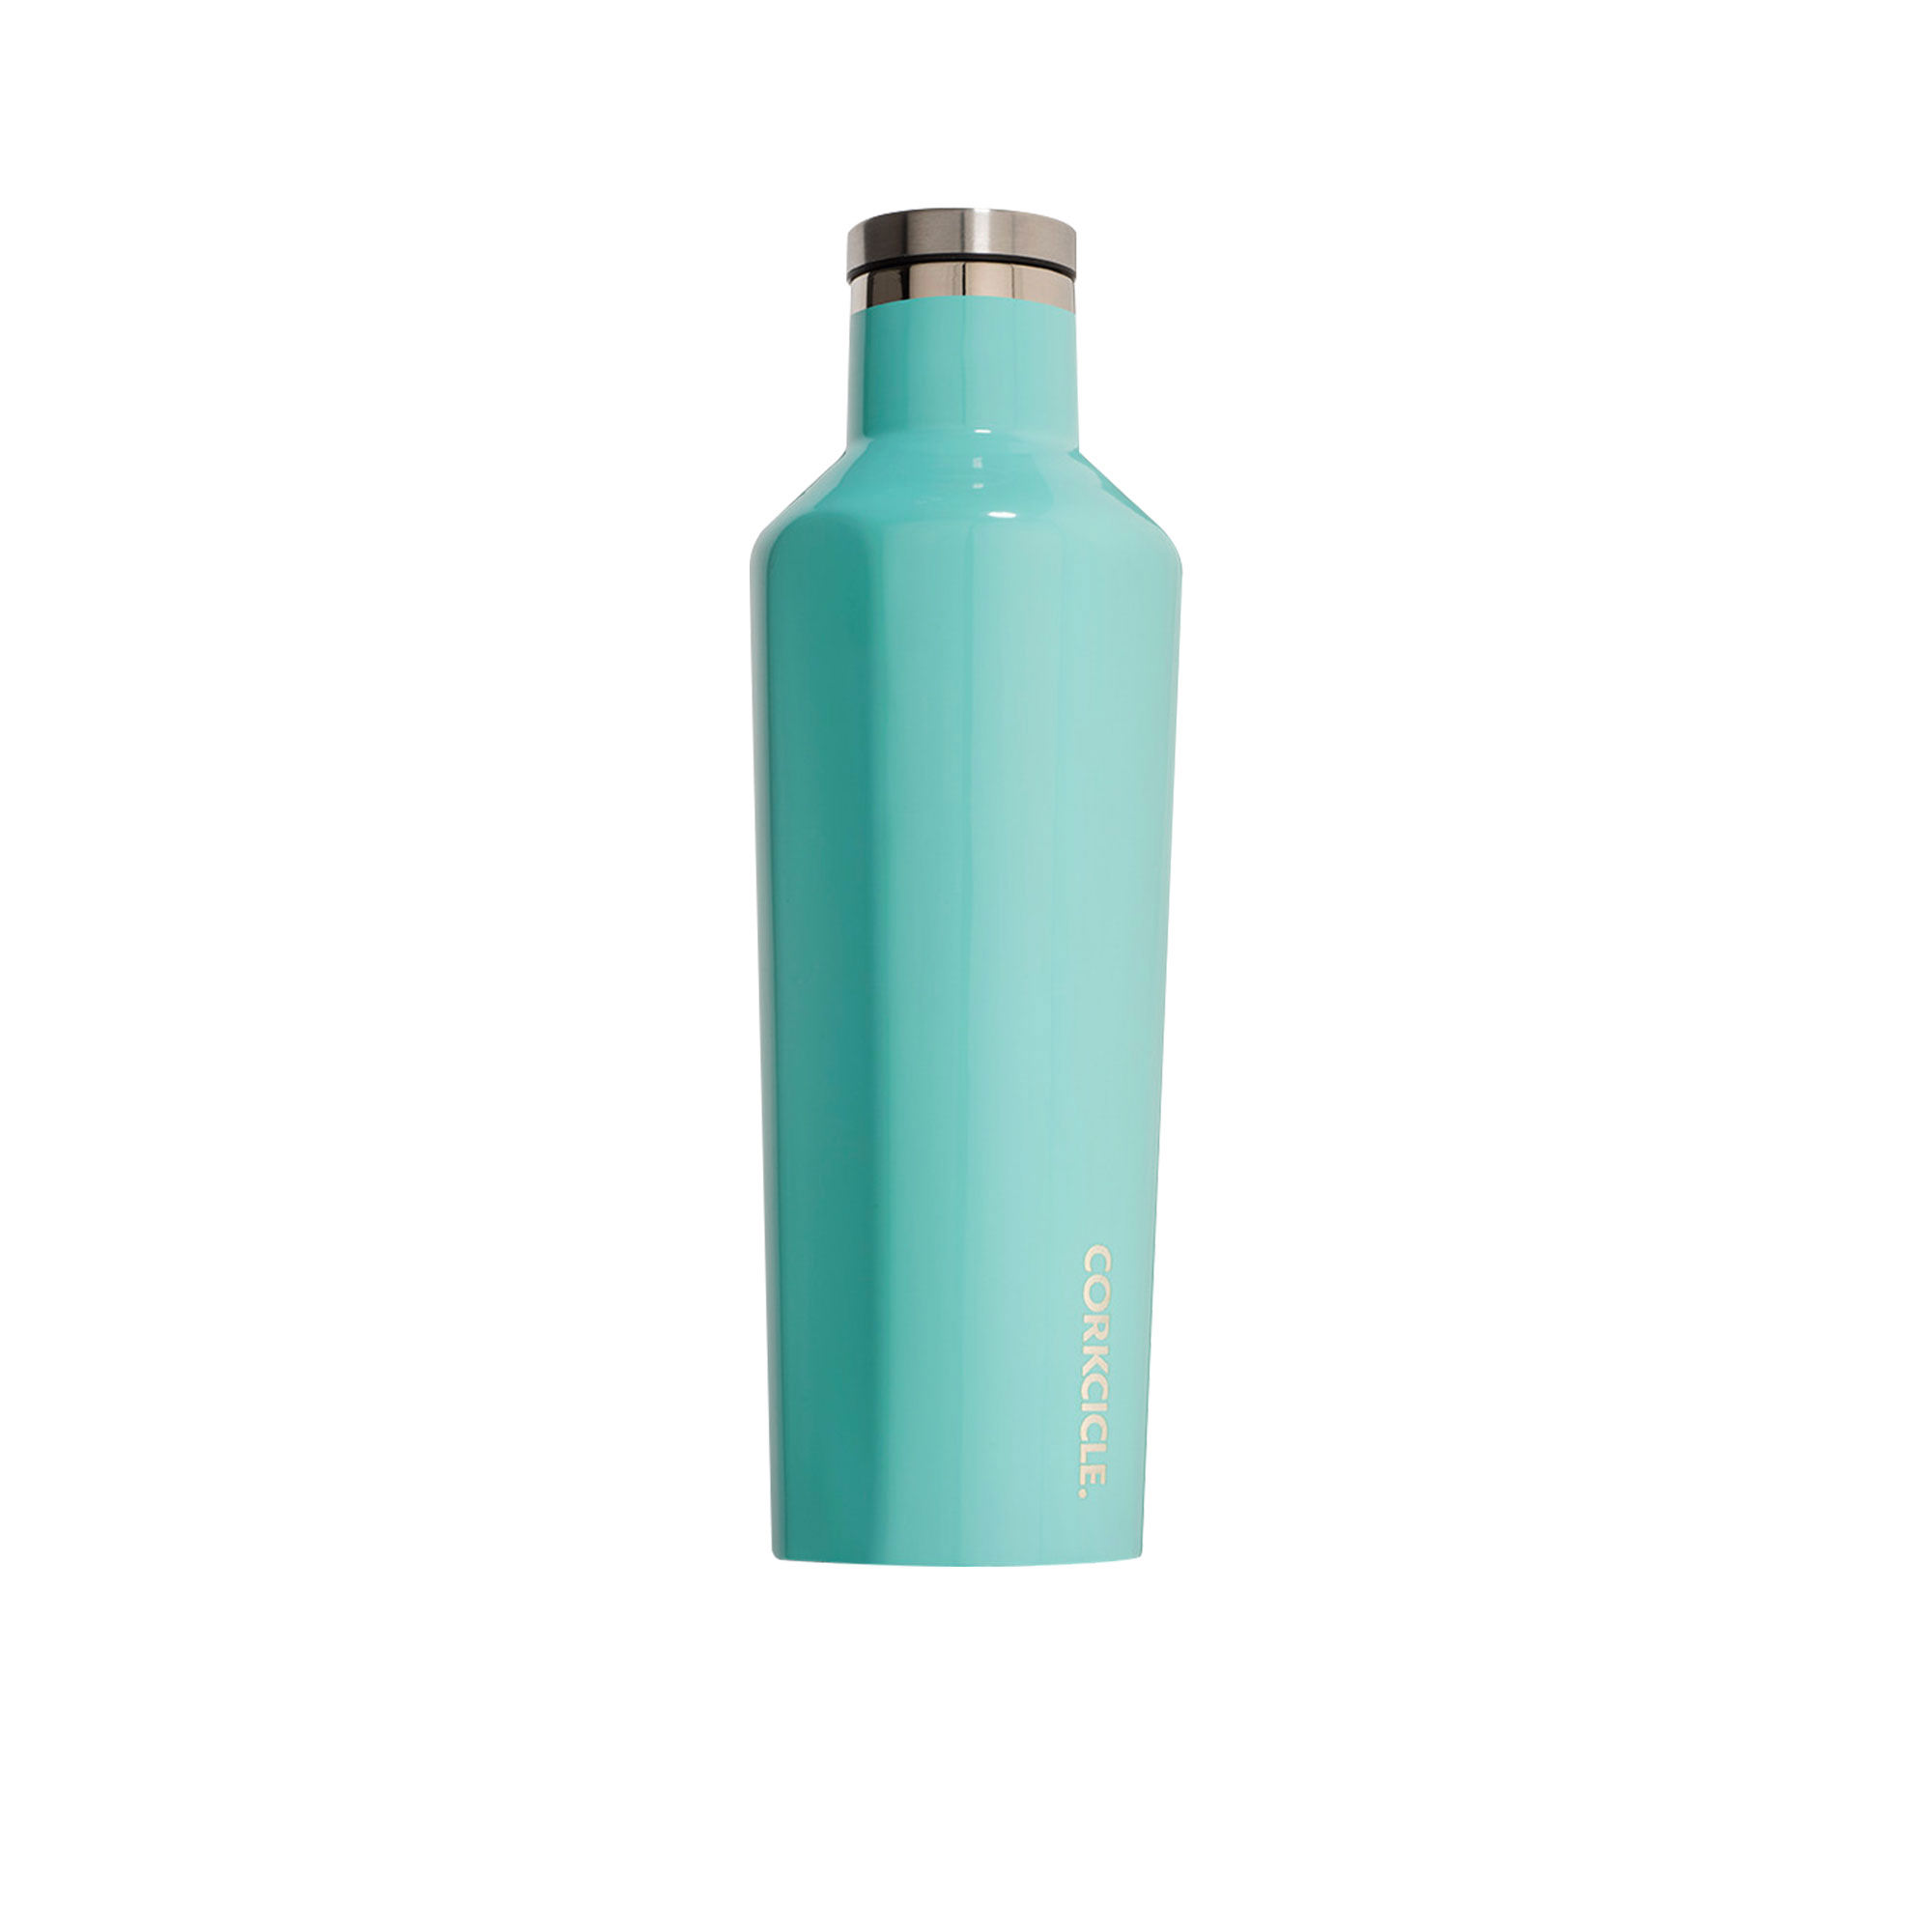 Corkcicle Classic Canteen Insulated Drink Bottle 475ml Turquoise